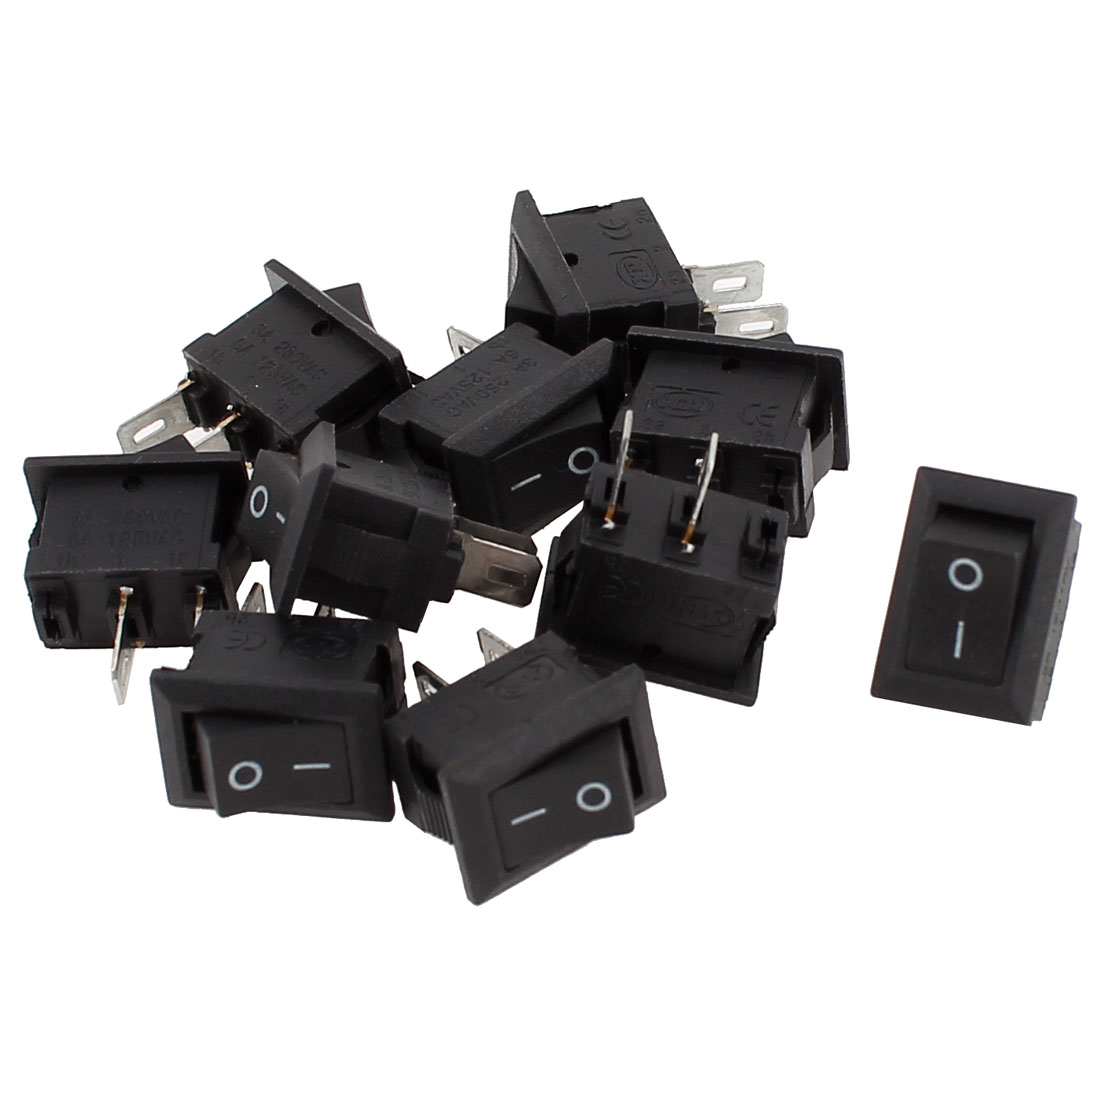 10 Pcs AC 250V 3A AC 125V 6A 2 Pin ON/OFF SPST Snap in Boat Rocker Switch